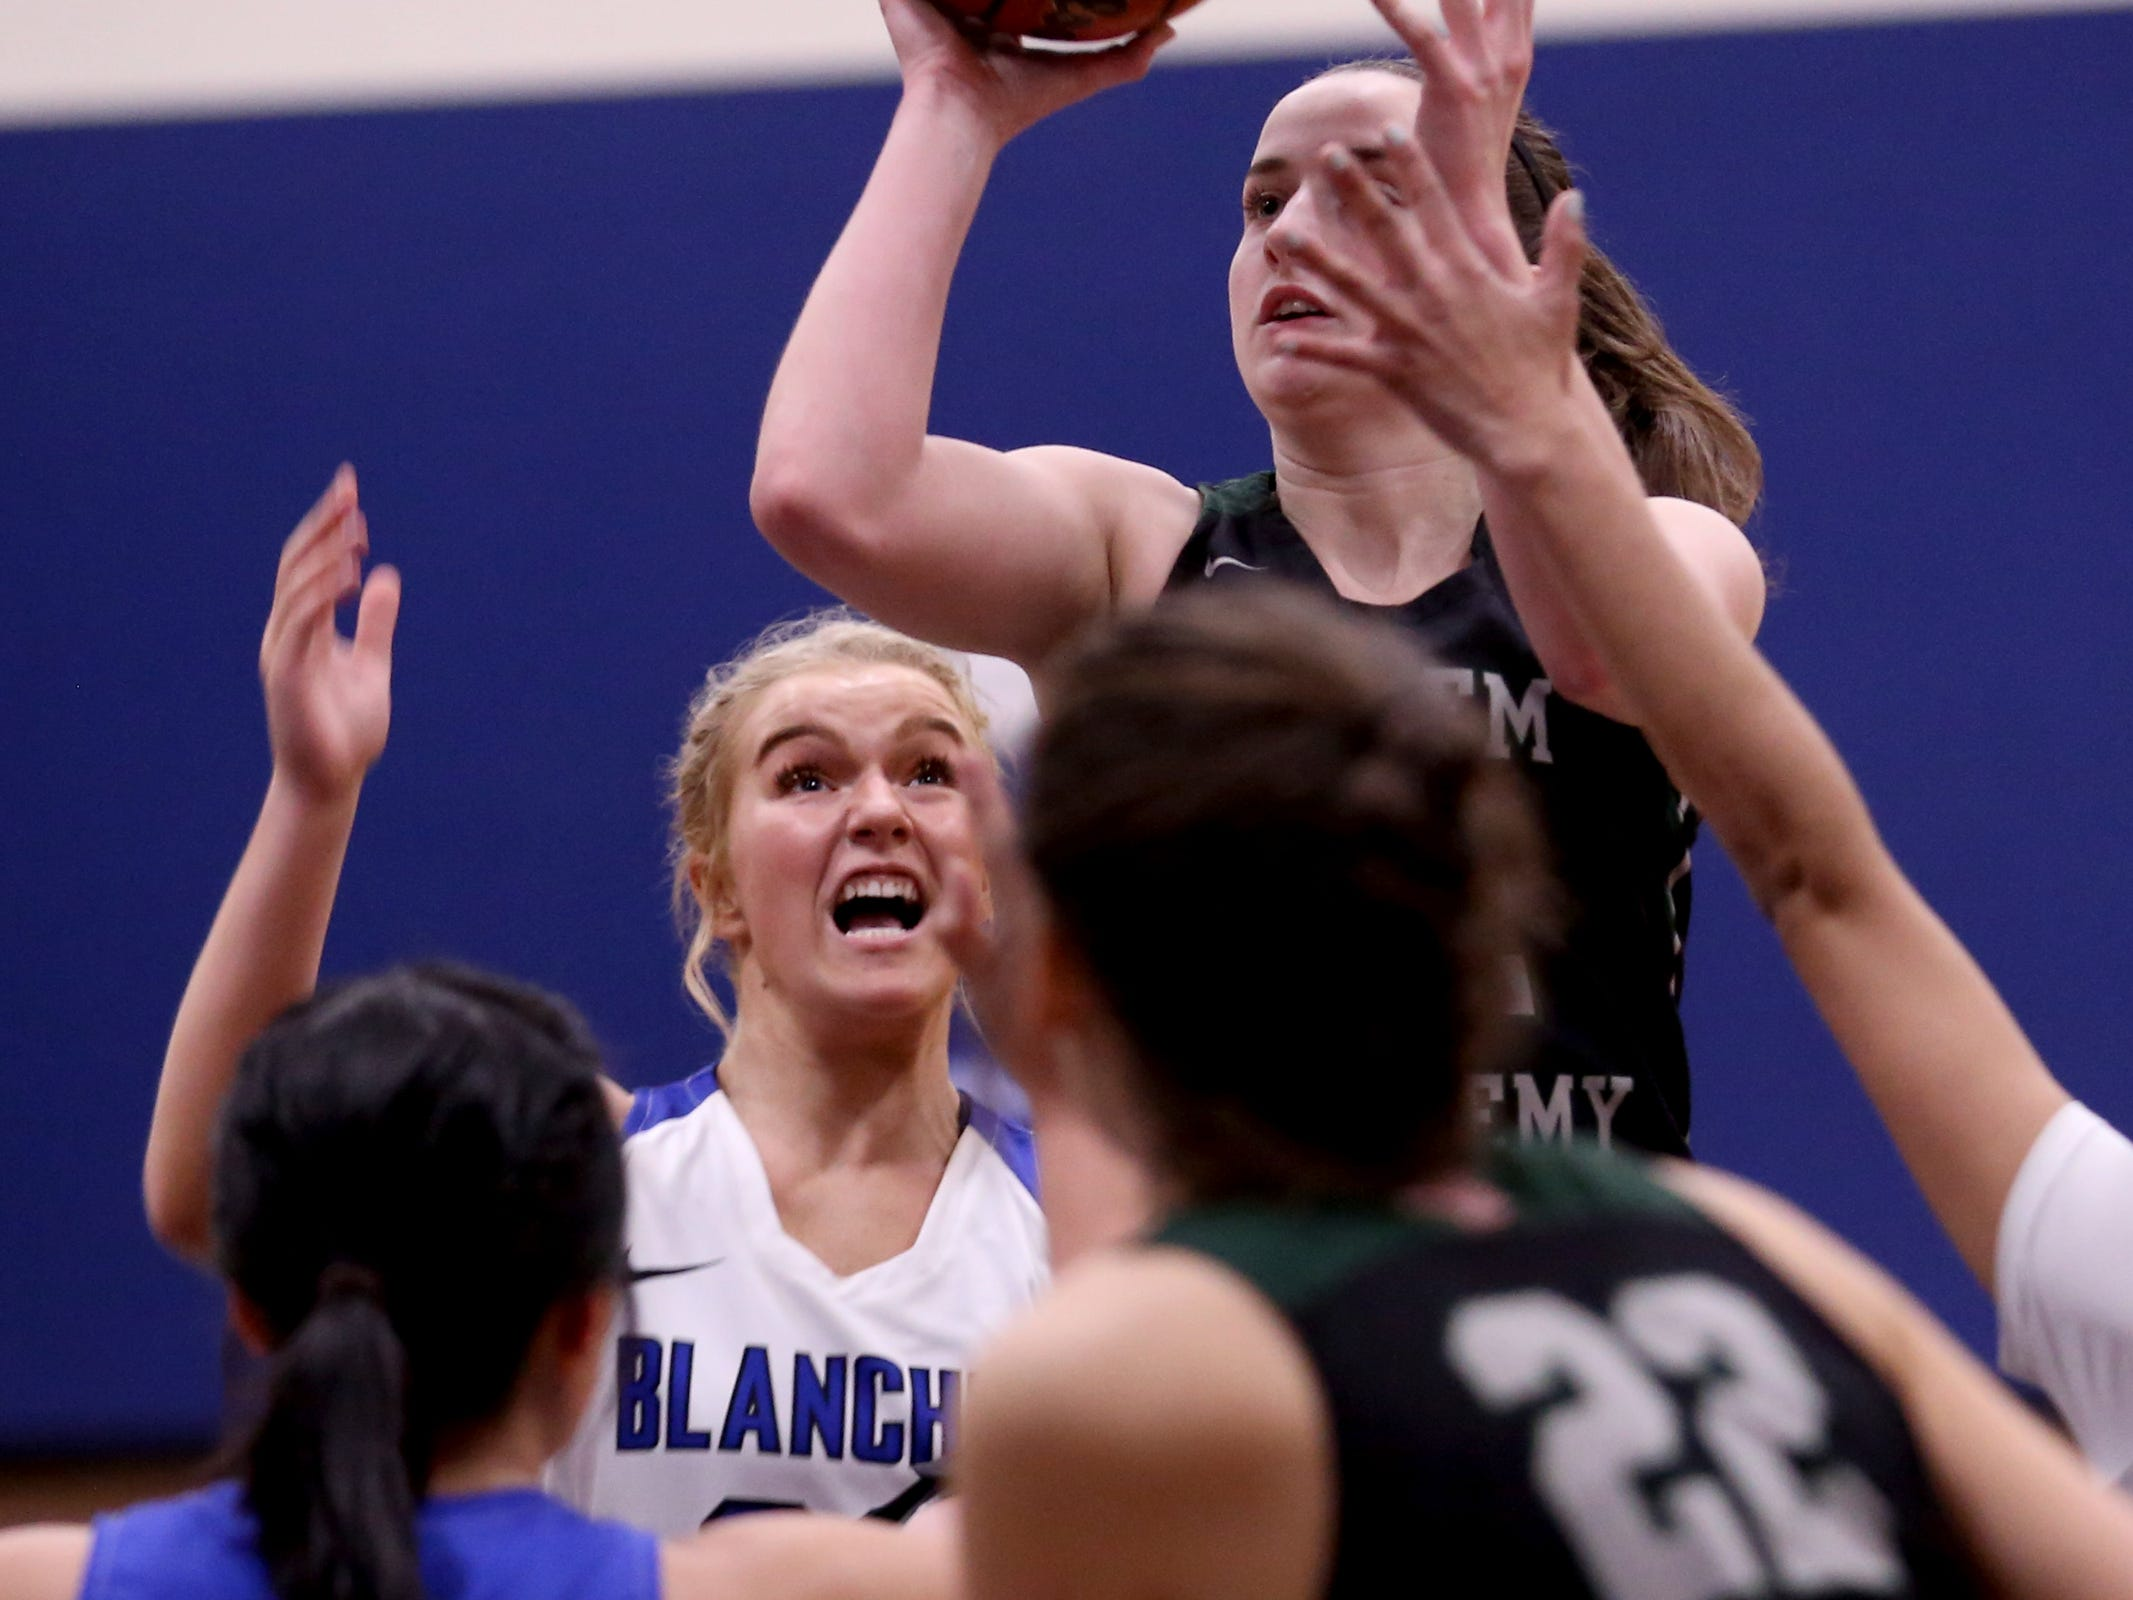 Salem Academy's Kirsten Koehnke (12) shoots over Blanchet Catholic's Bailey Hittner (22) in the first half of the Salem Academy vs. Blanchet Catholic girls basketball game at Blanchet Catholic School in Salem on Friday, Jan. 18, 2019. Blanchet Catholic won the gam 48-40.